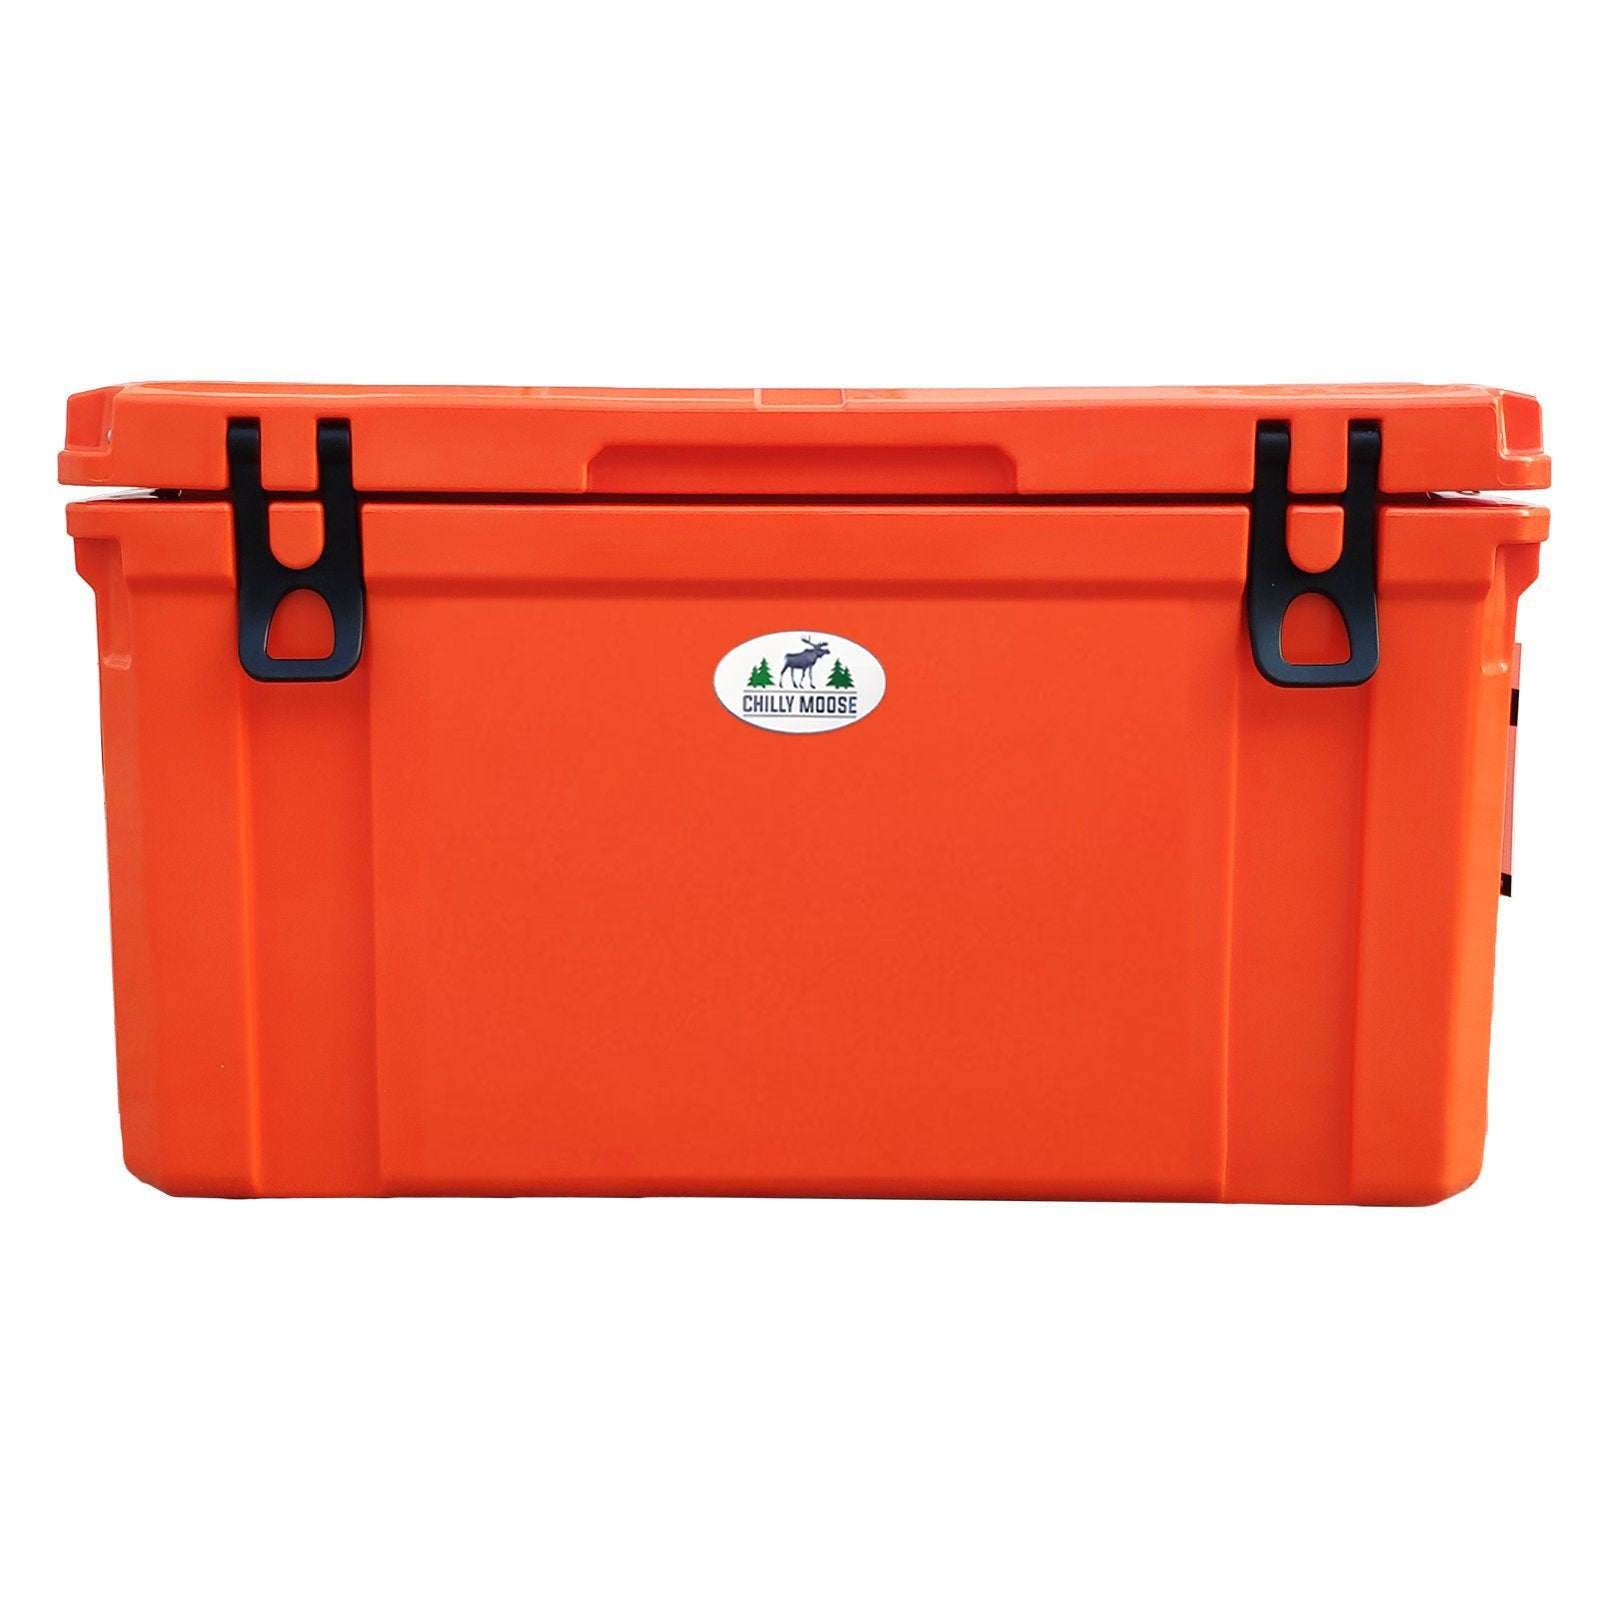 Chilly Moose® 75 LTR Chilly Ice Box Cooler